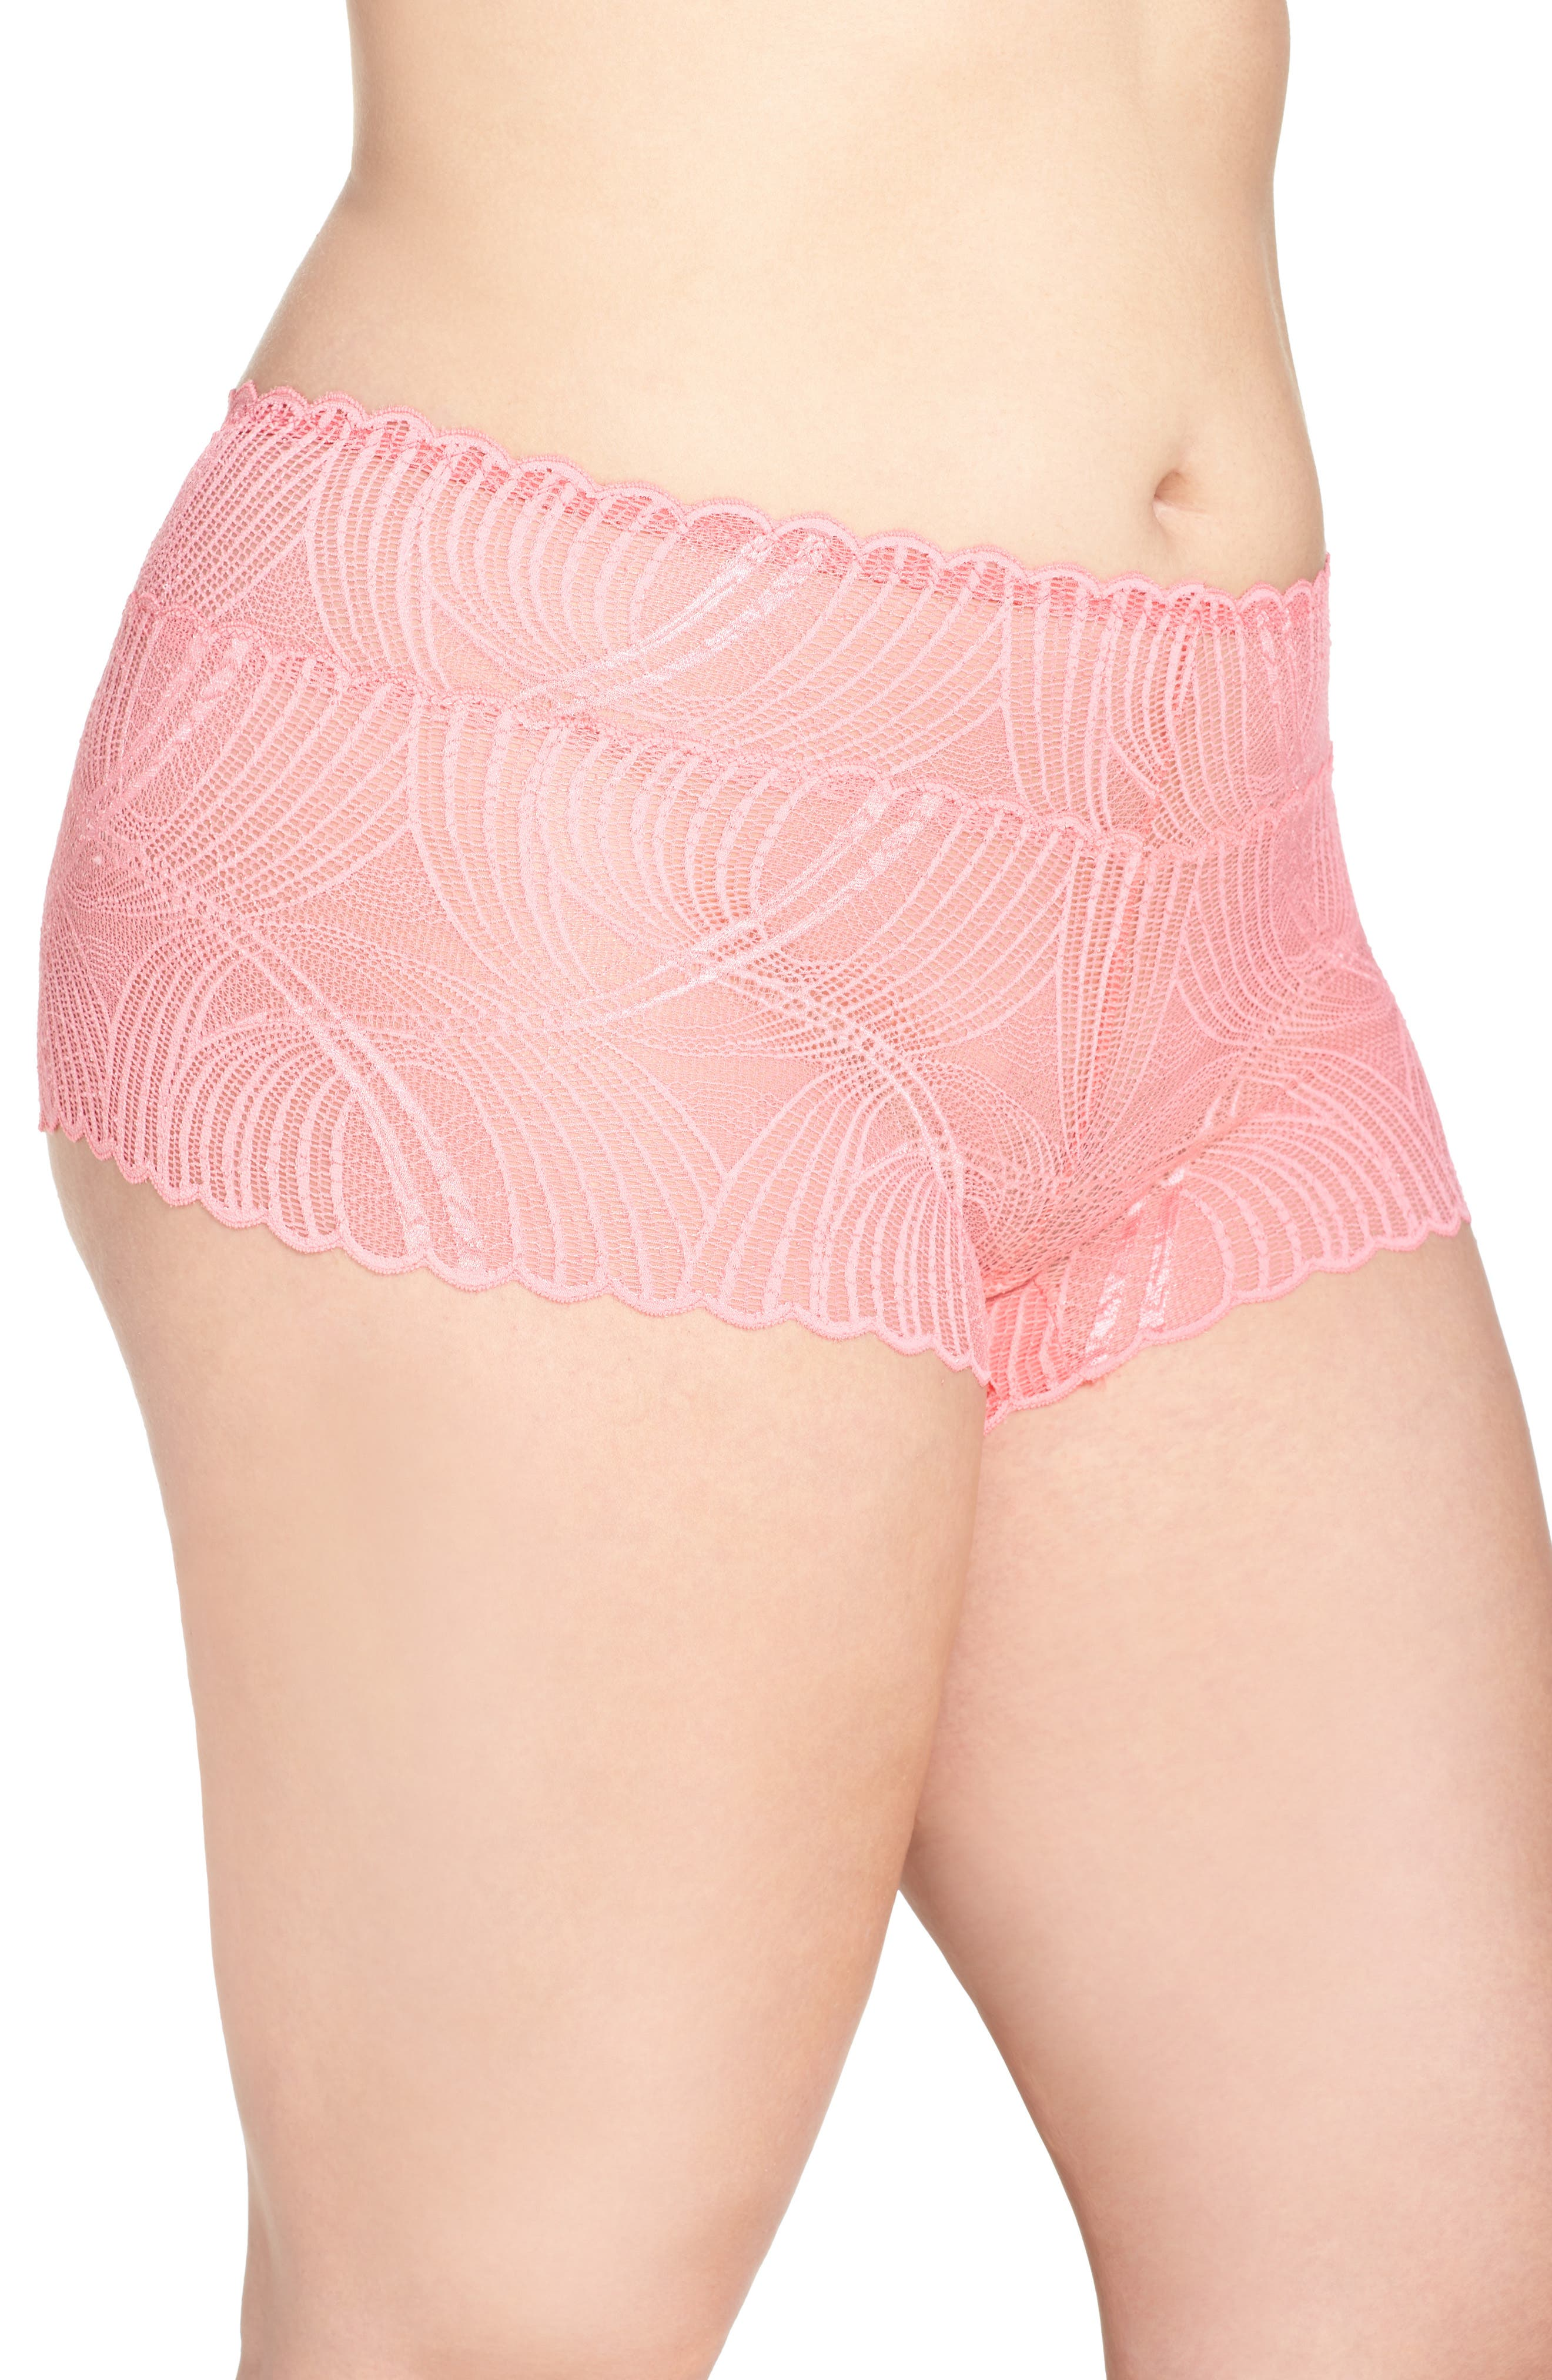 Minoa Naughtie Open Gusset Boyshorts,                             Alternate thumbnail 15, color,